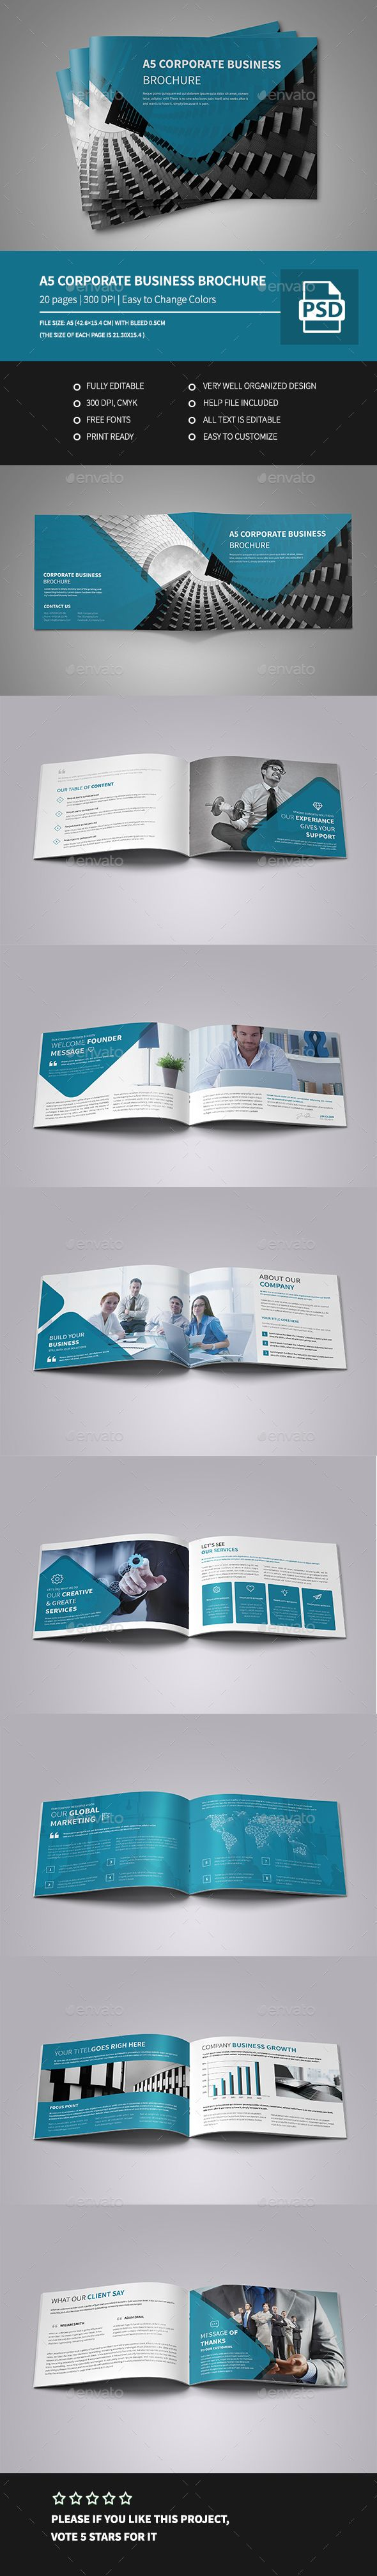 a5 landscape brochure template - a5 corporate business landscape brochure decoracion